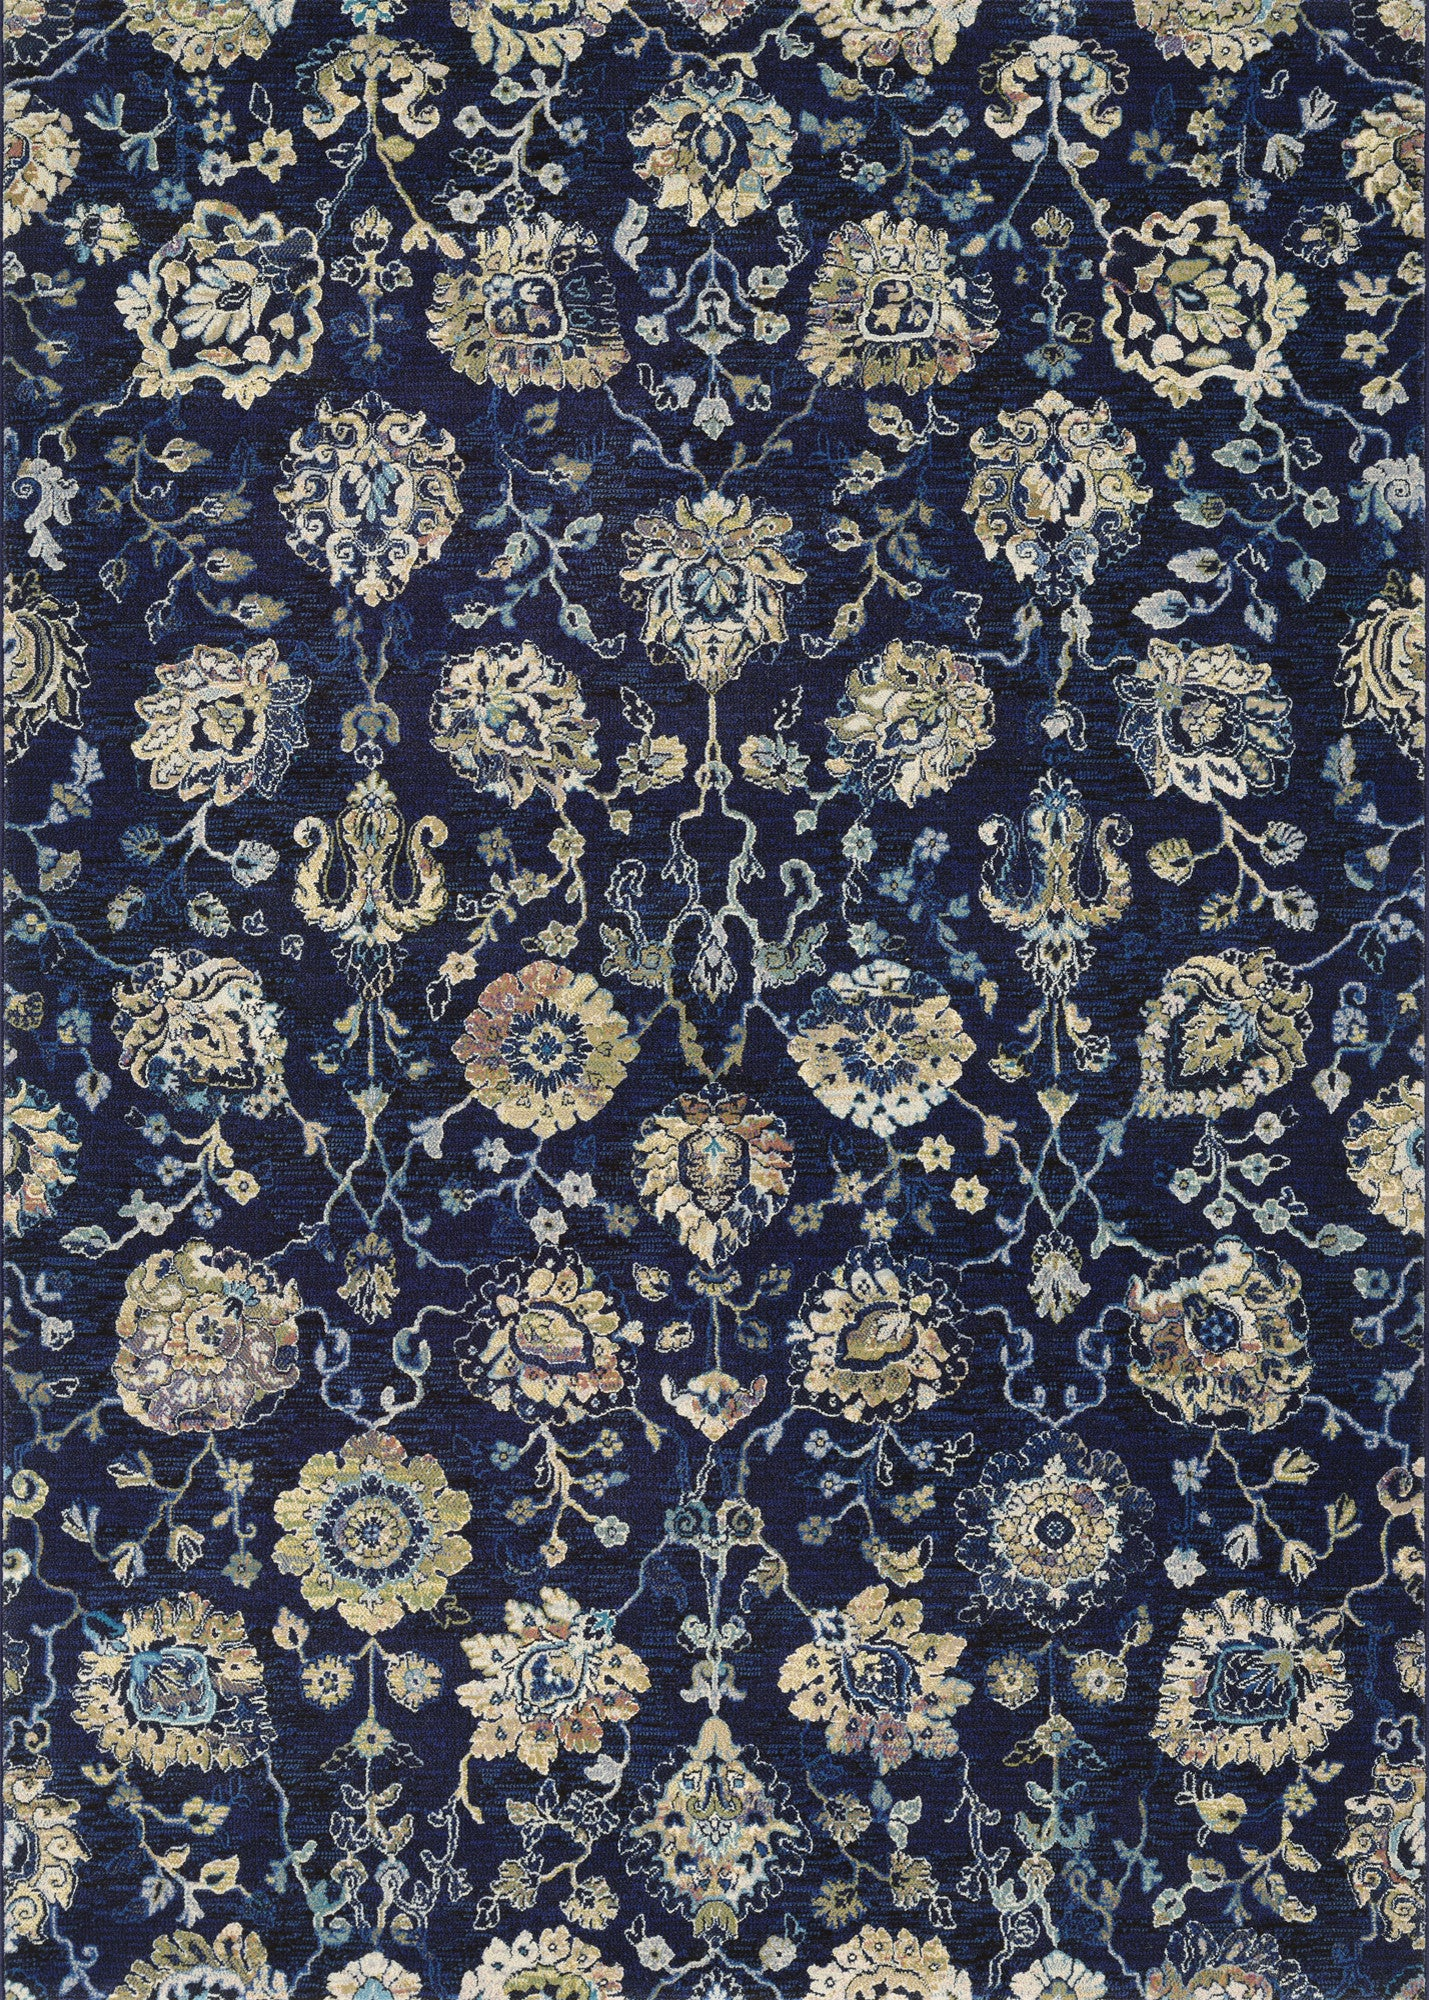 Couristan Easton Adaline Navy/Cream Area Rug